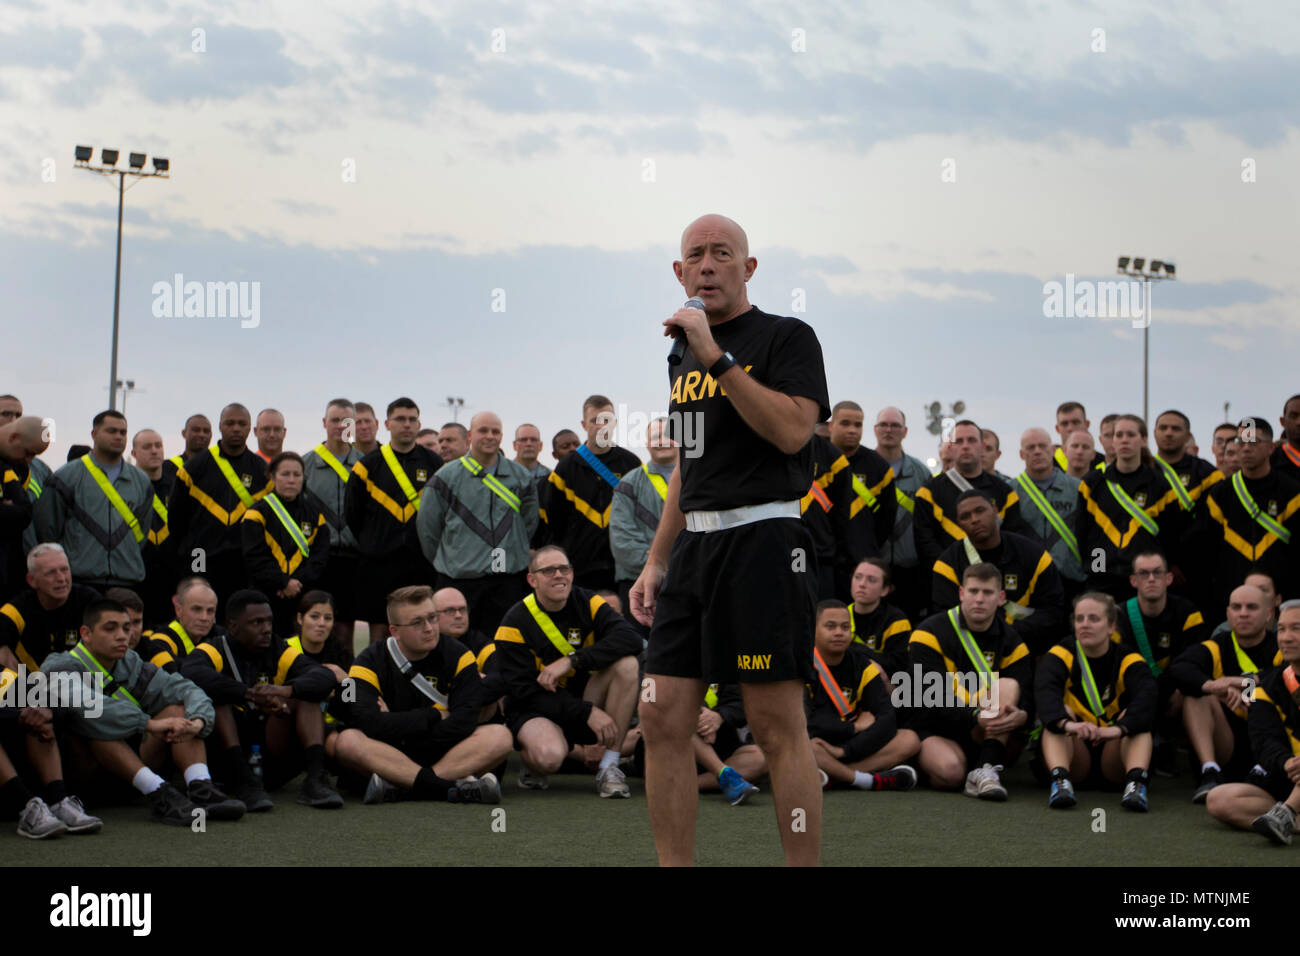 U.S. Army Reserve Commanding General Lt. Gen. Charles D. Luckey speaks with Soldiers from the 316th Sustainment Command (Expeditionary), an U.S. Army Reserve unit from Coraopolis, Pa., after a 5K at Camp Arifjan, Kuwait, Jan. 10, 2017. Luckey spoke with Soldiers about the capabilities, need and importance of their missions overseas. The 316th ESC mission in Kuwait is to support the 1st Sustainment Command (Theater) mission of providing logistics support throughout the U.S. Central Command area of operations. (U.S. Army Photo by Staff Sgt. Dalton Smith) - Stock Image